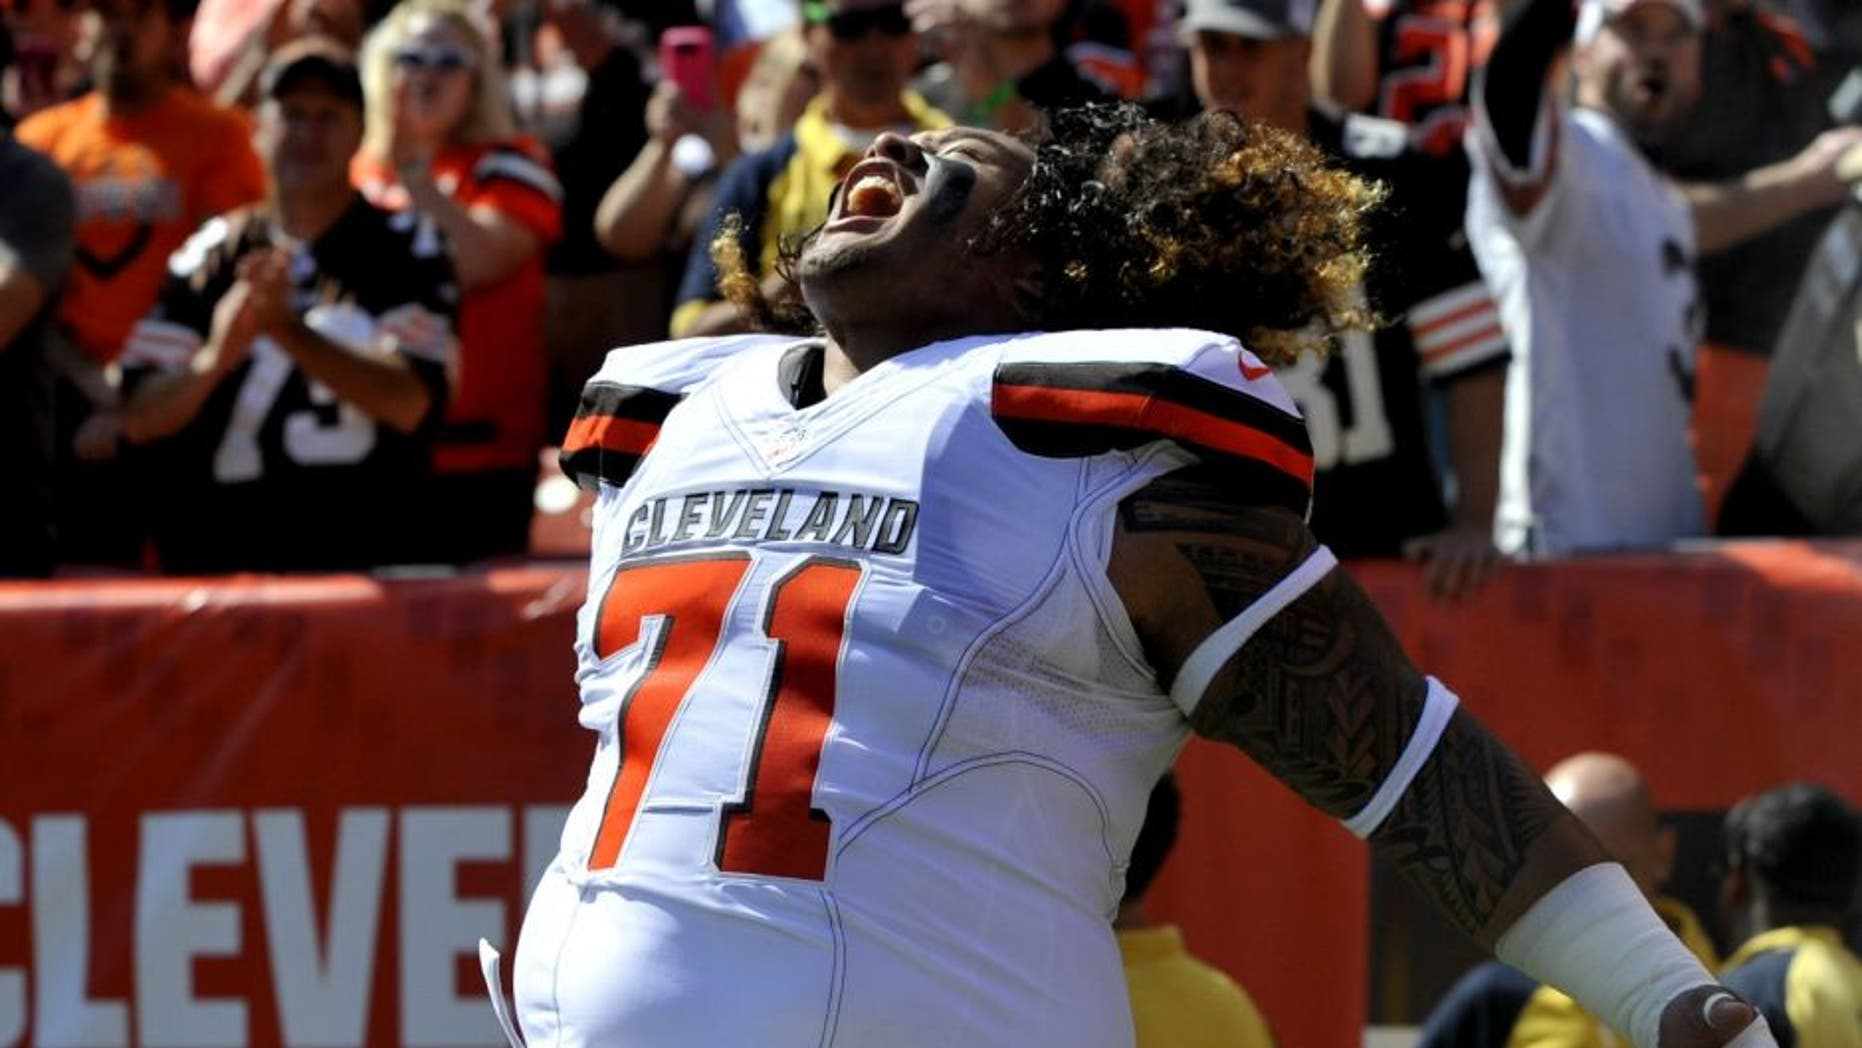 CLEVELAND, OH - SEPTEMBER 20, 2015: Defensive tackle Danny Shelton #71 of the Cleveland Browns screams as he is introduced to the crowd prior to a game against the Tennessee Titans on September 20, 2015 at FirstEnergy Stadium in Cleveland, Ohio. Cleveland won 28-14. (Photo by Nick Cammett/Diamond Images/Getty Images) *** Local Caption *** Danny Shelton